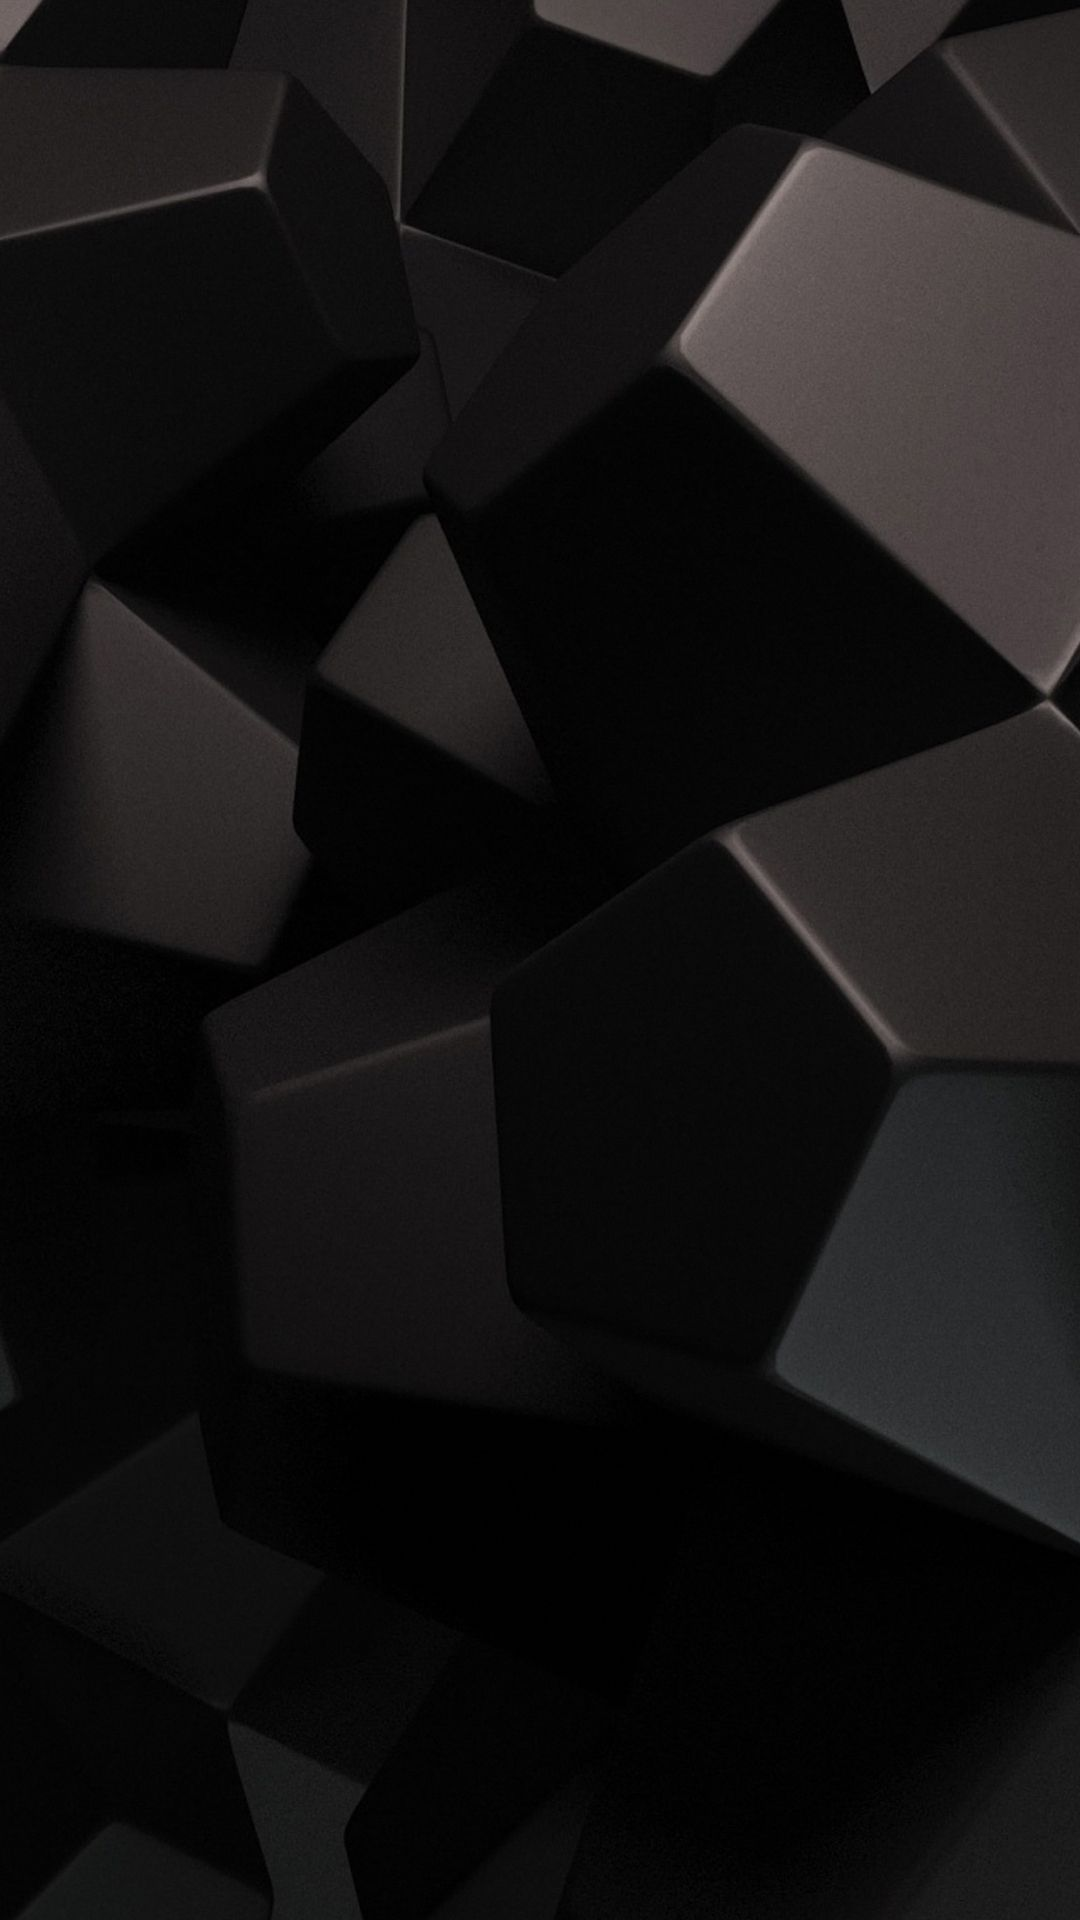 3d Wallpaper For Android Phone